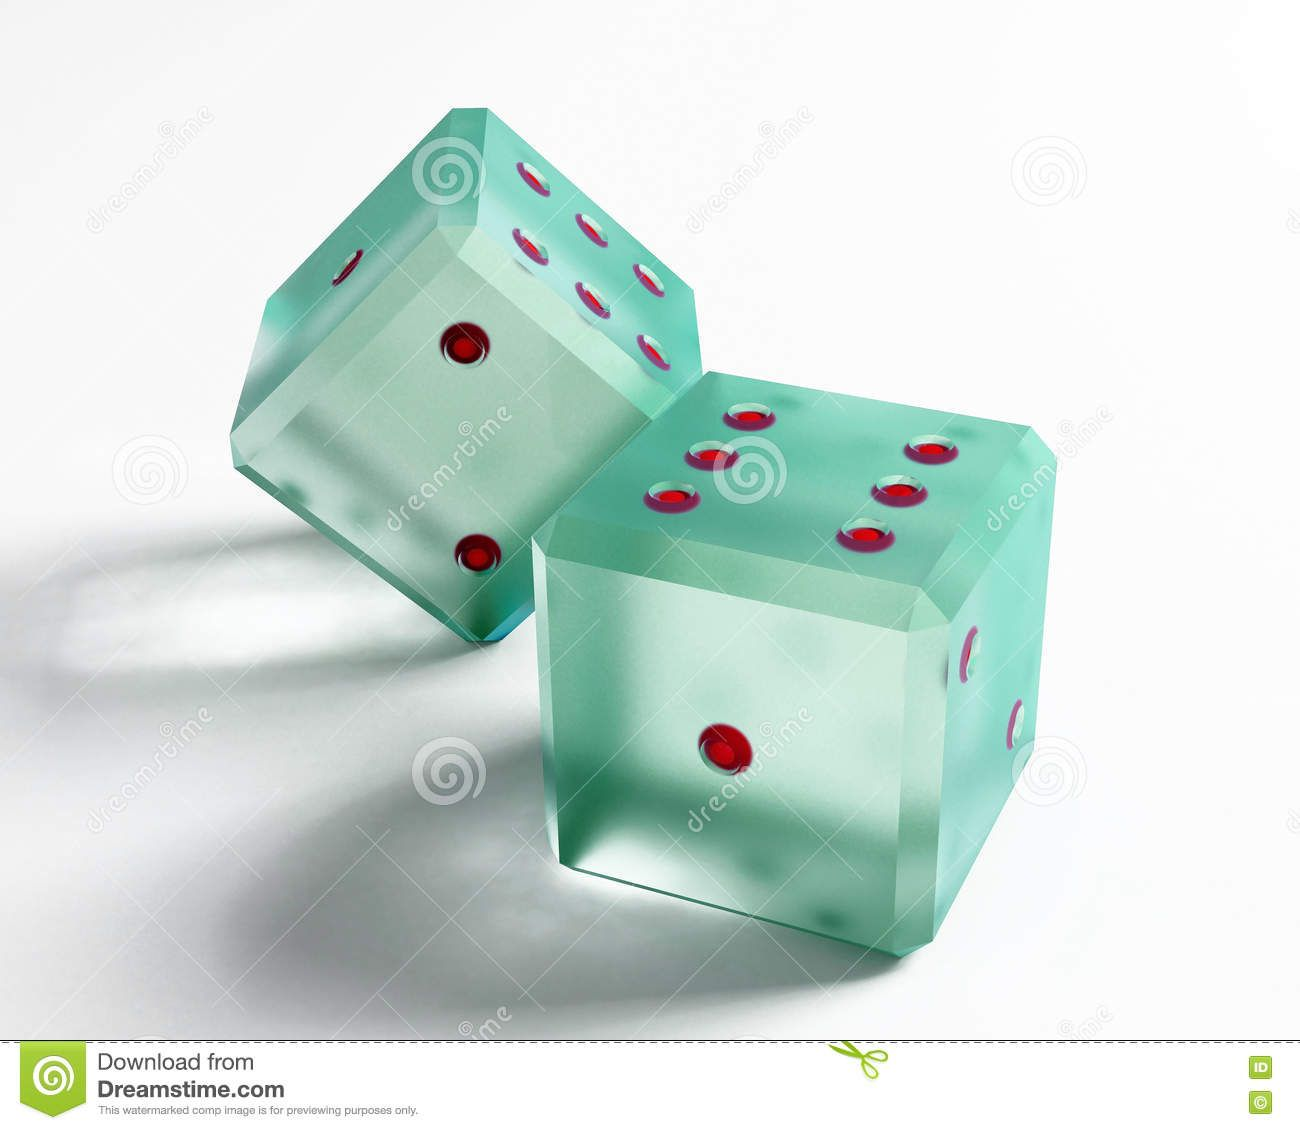 Glass Dice The Glass Dice Over The White Background Card